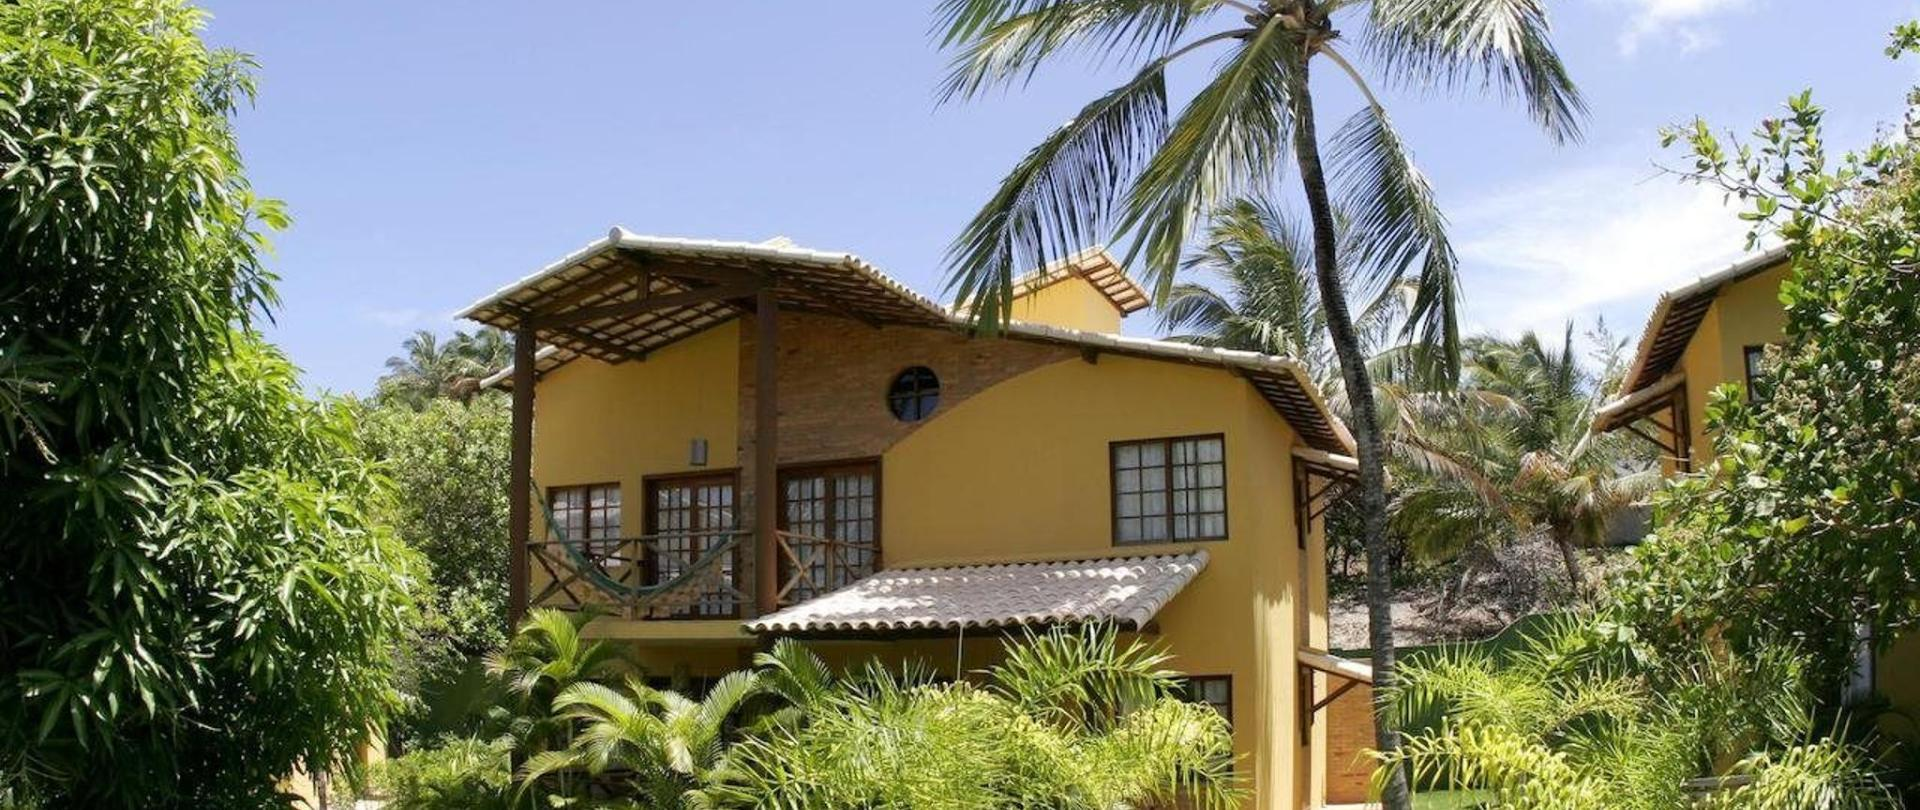 Sightseeing